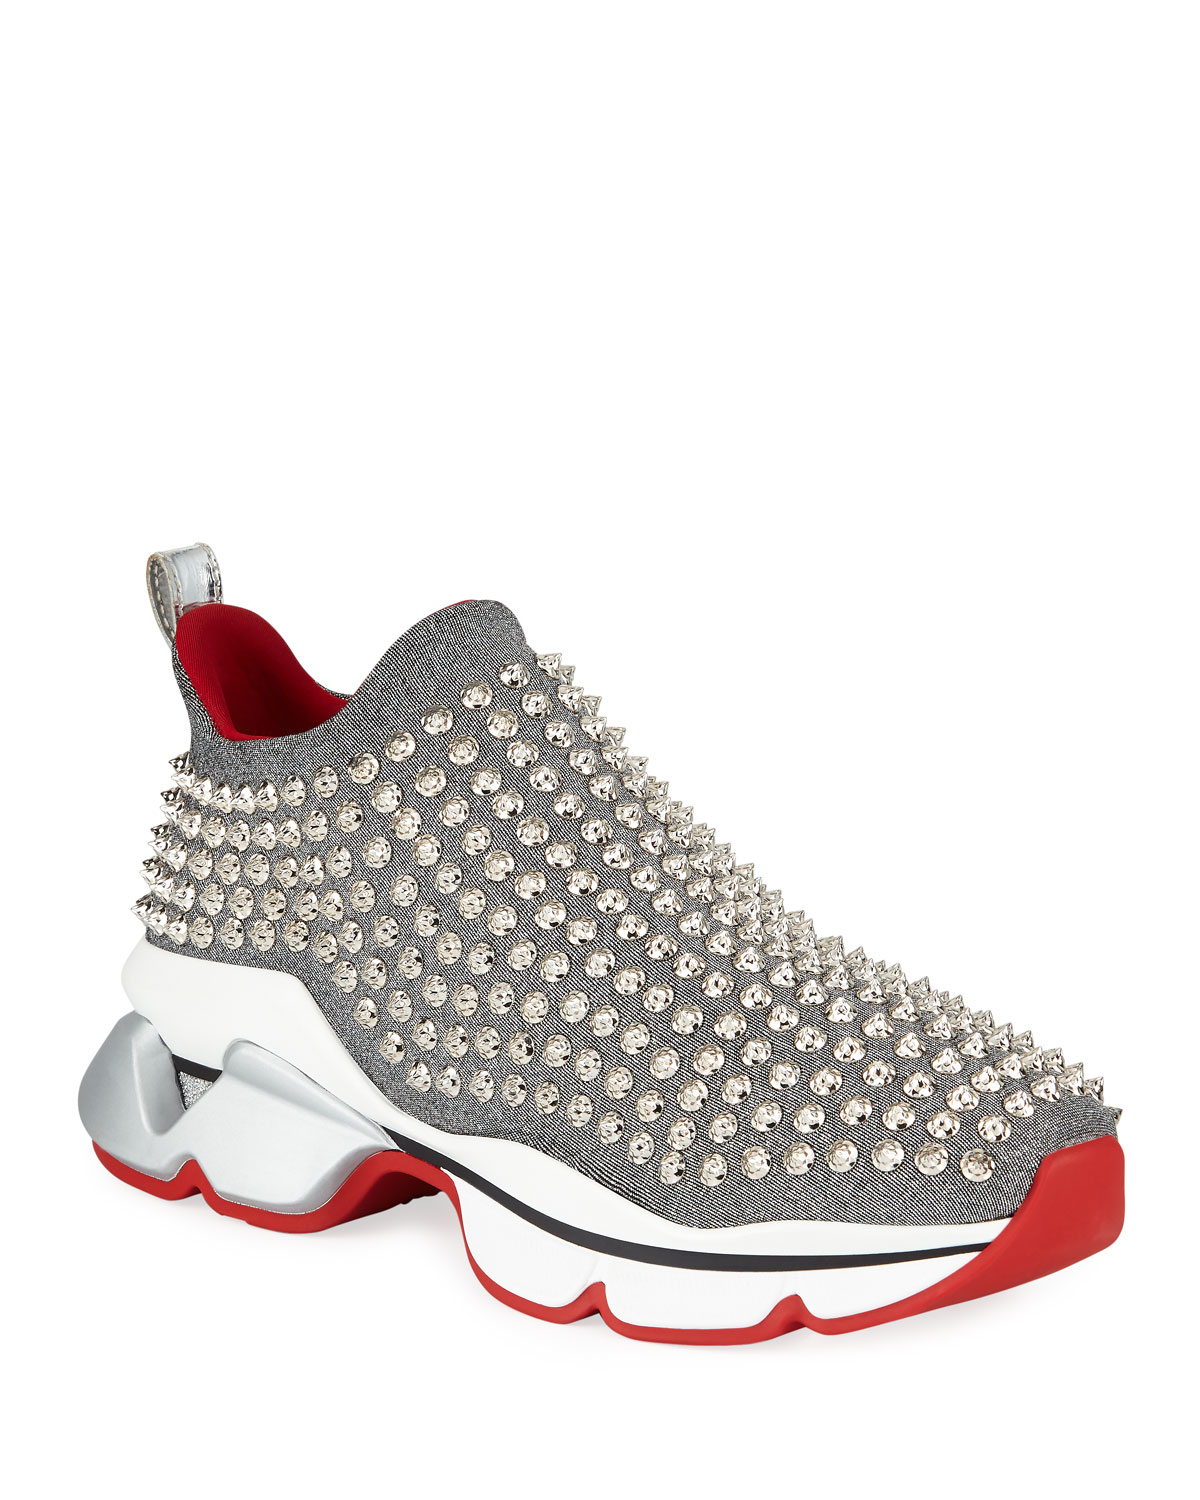 a8683e38e11c Christian Louboutin Spiky Sock Donna Flat Red Sole Sneakers